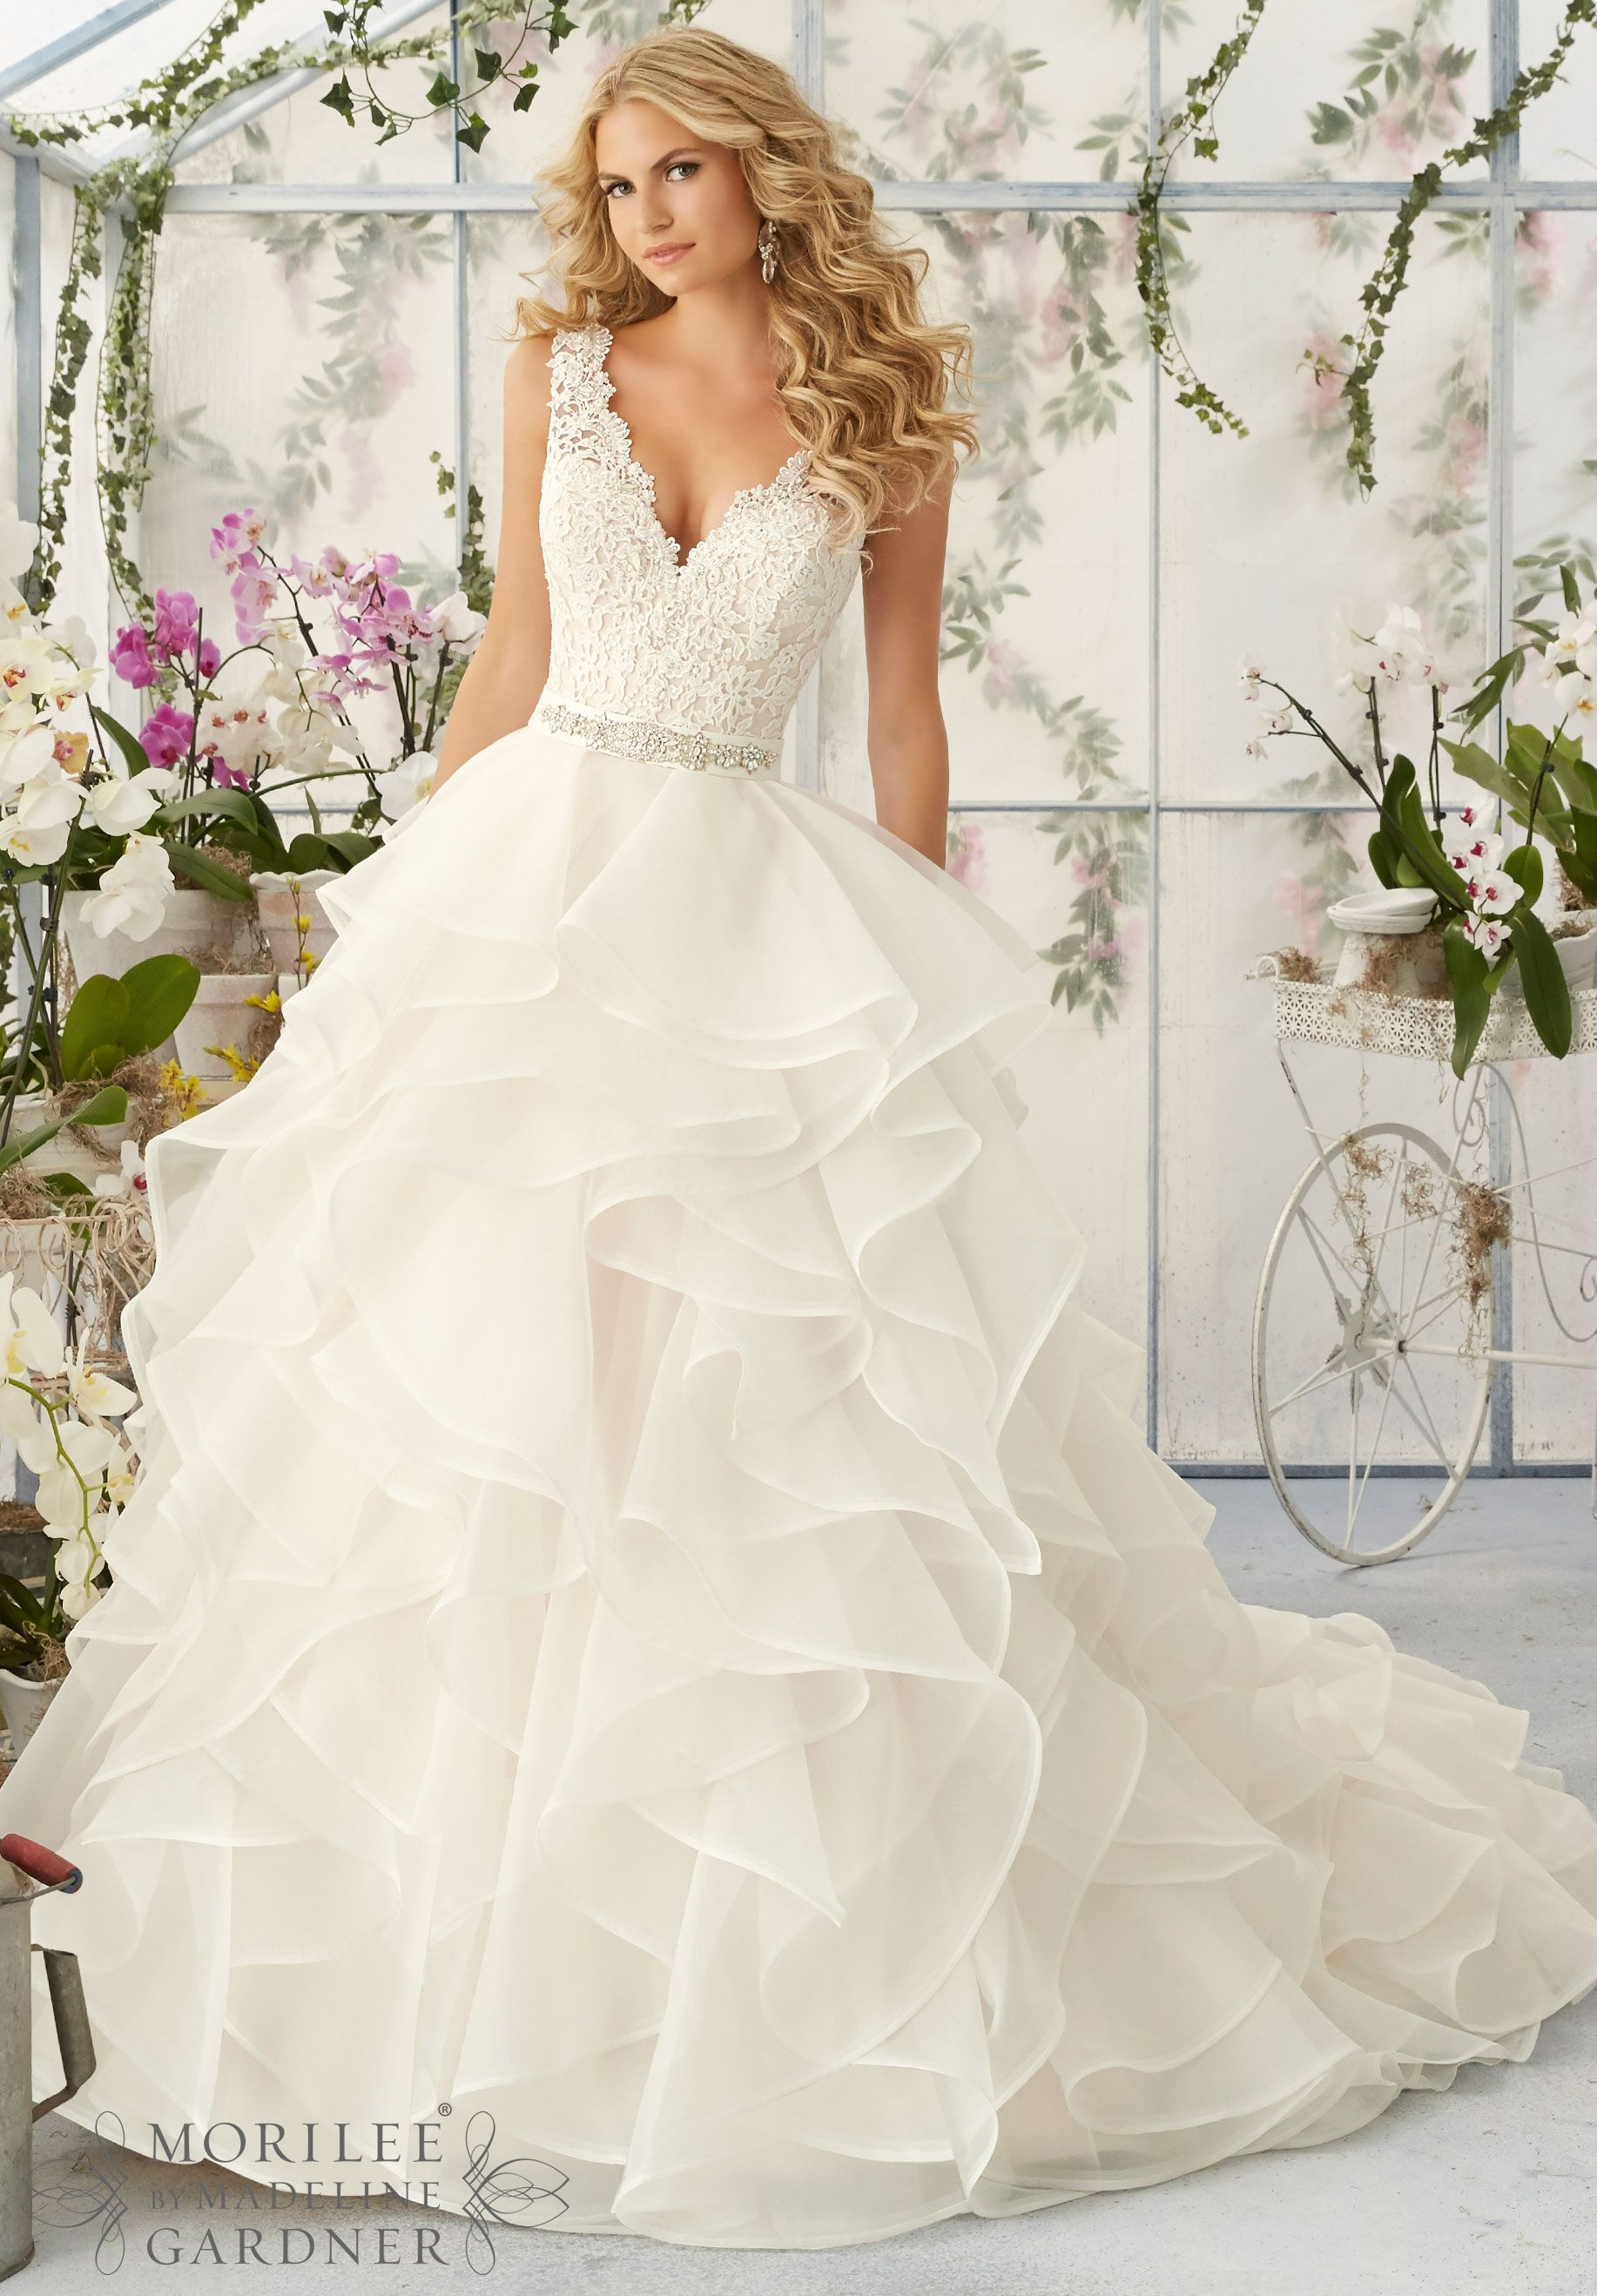 Lace Appliques On Organza Skirt Wedding Dress Morilee Top